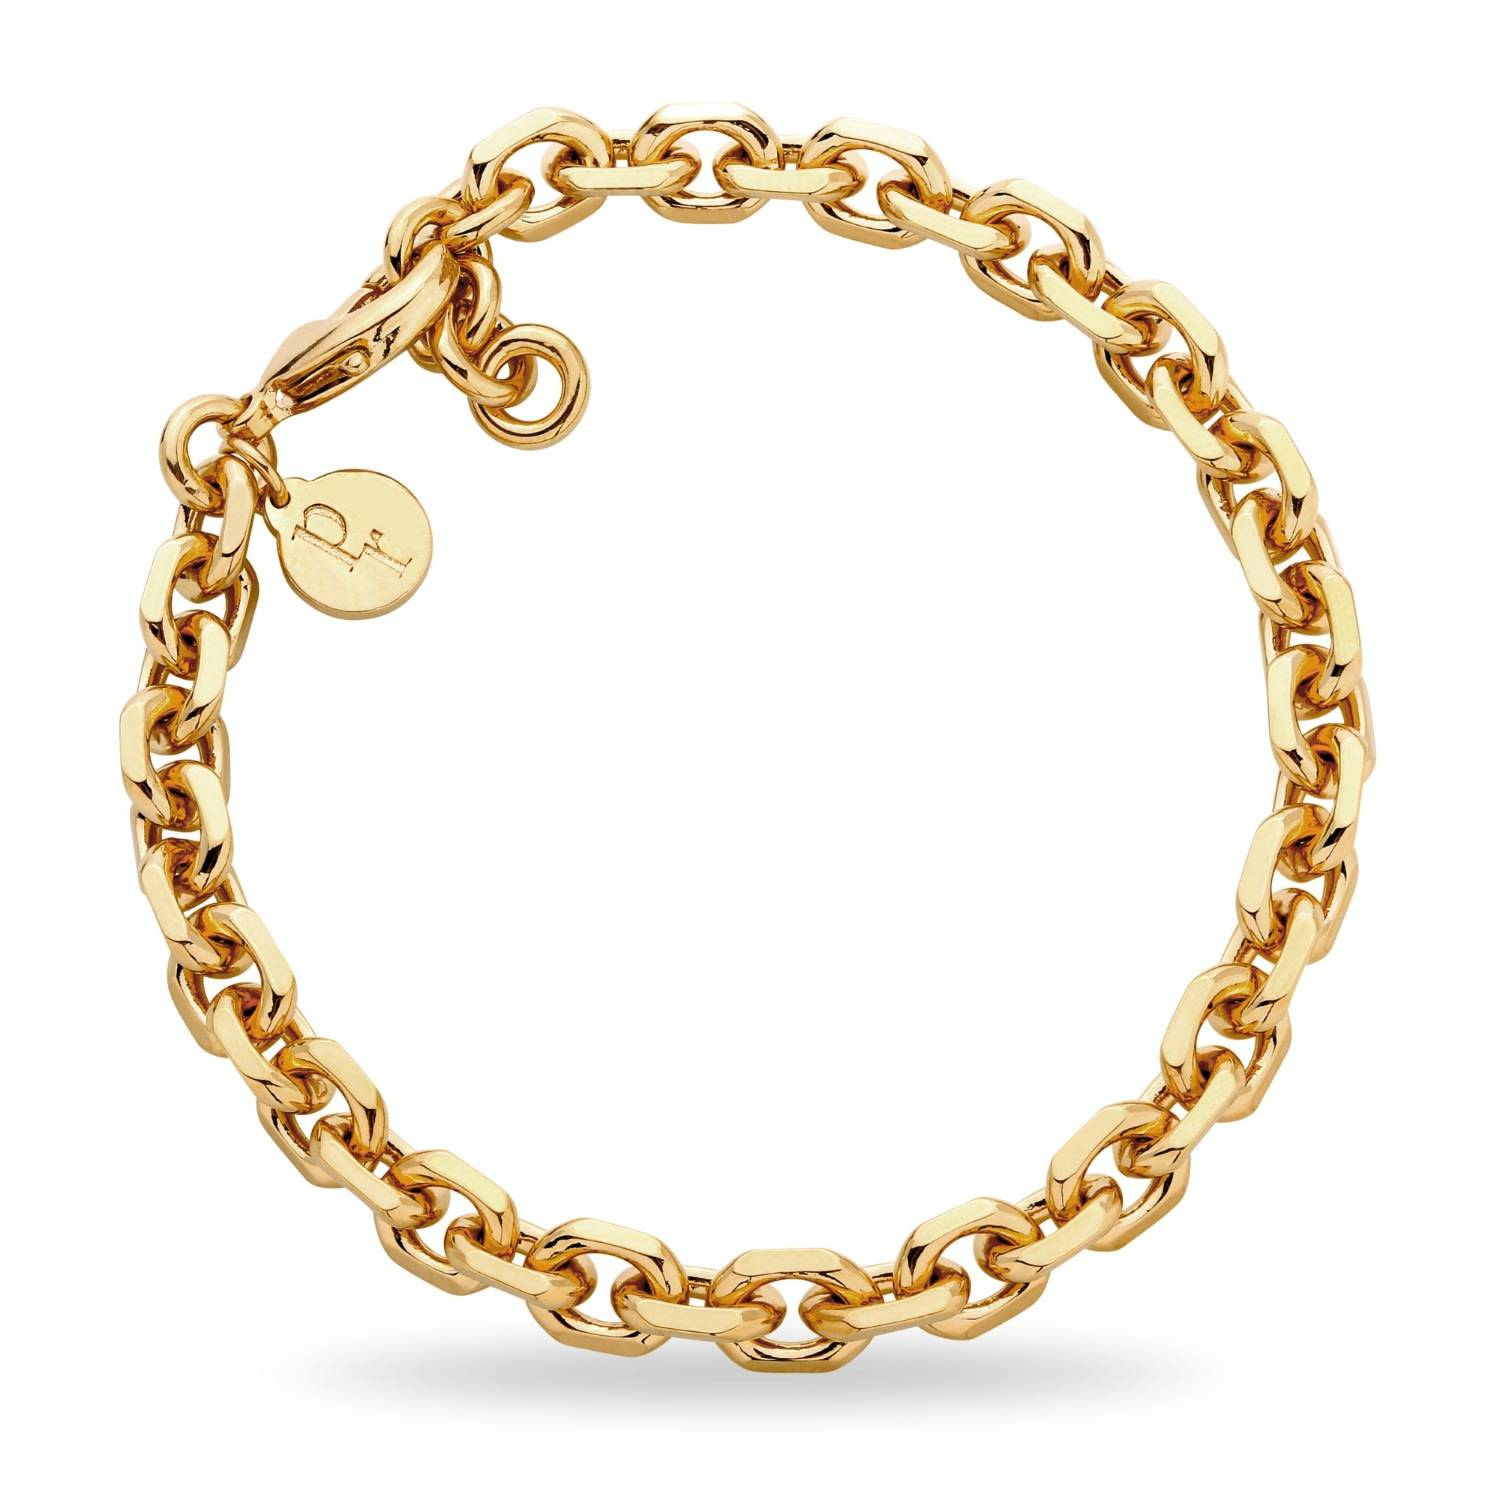 Patty Rose Jewellery Women's Recycled Gold Brass Chain No.10 Bracelet Patty Rose Jewellery